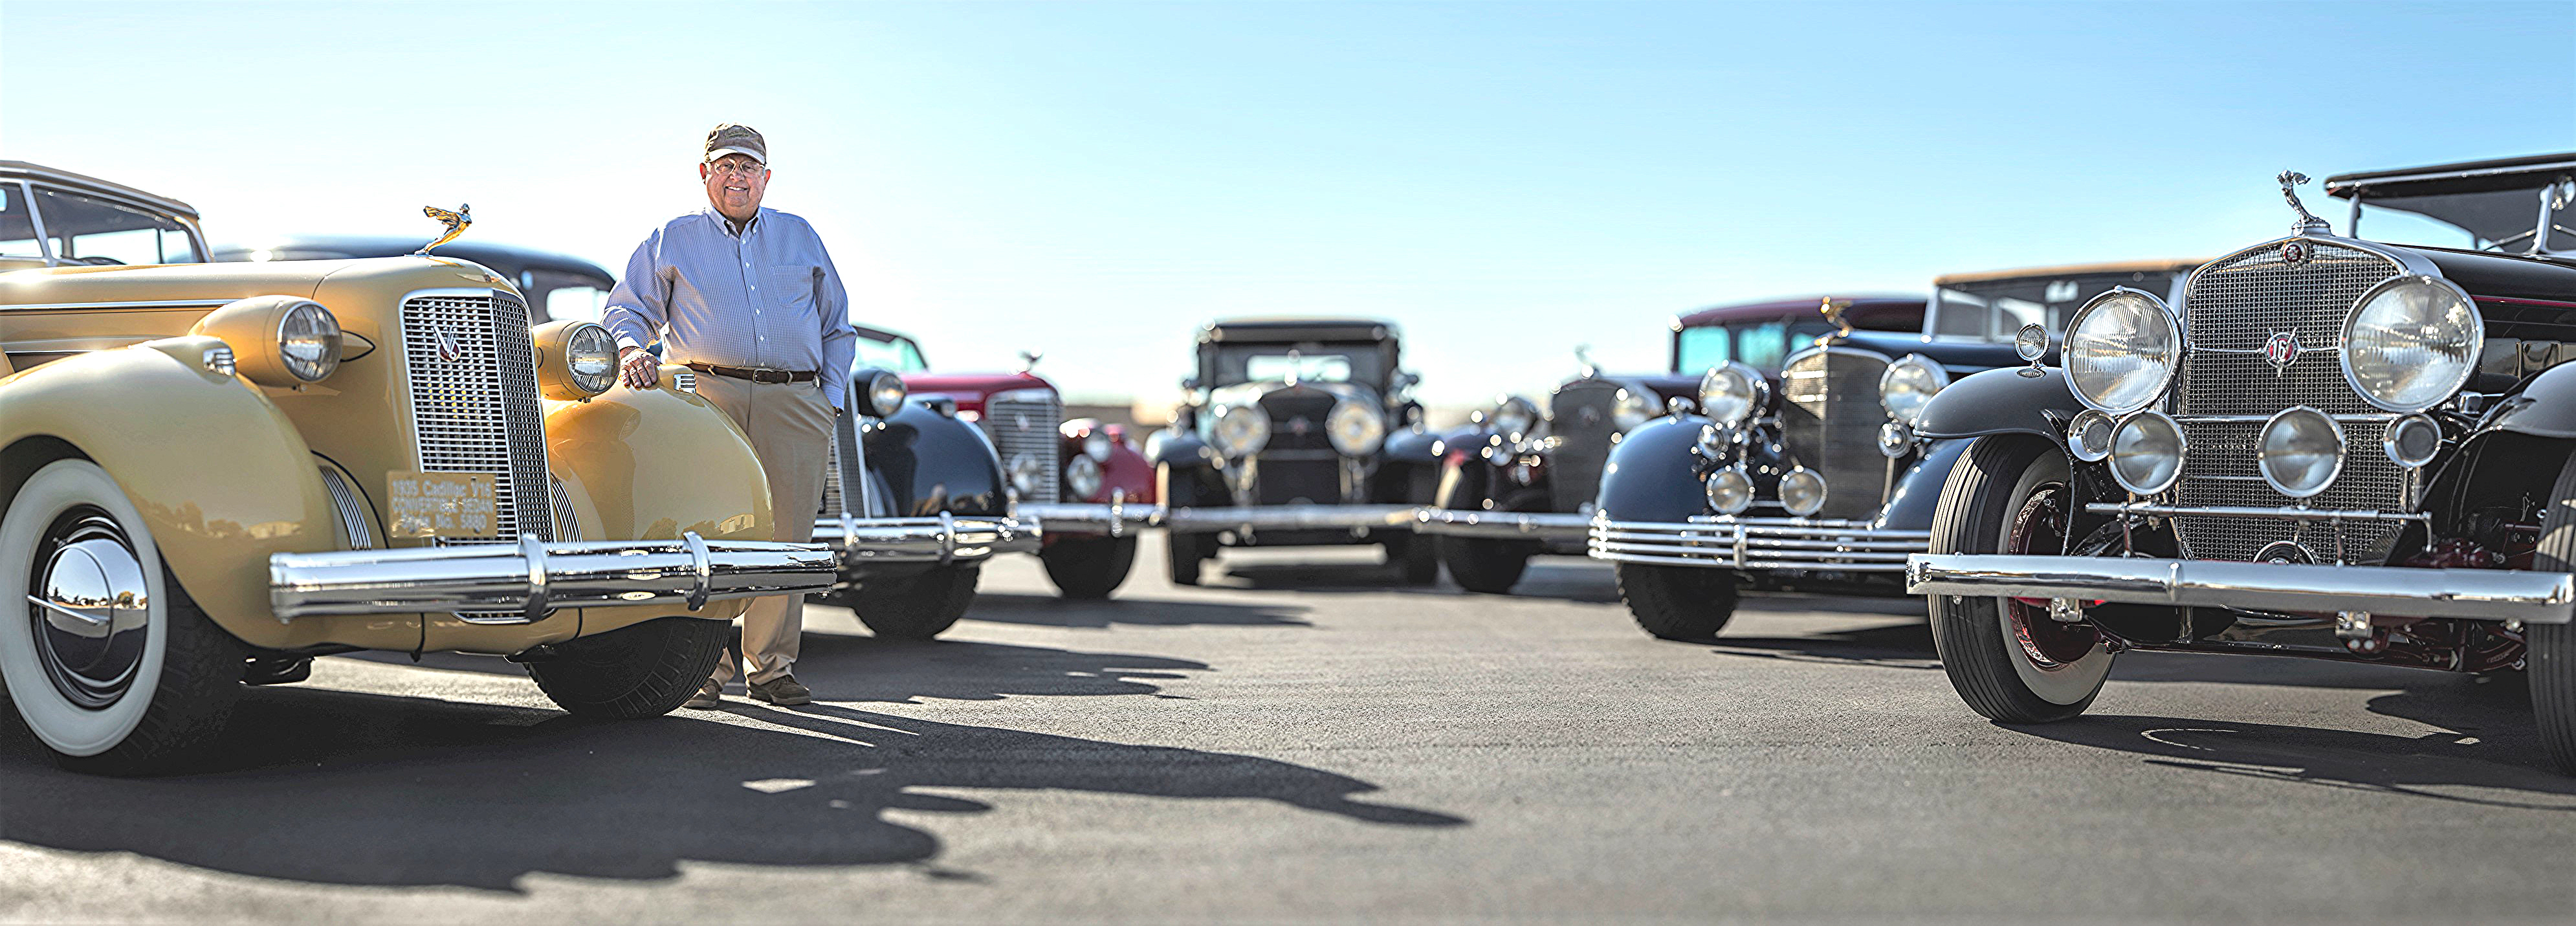 cadillac, Seven iconic V-16 Cadillacs set for RM's Sotheby's Arizona auction, ClassicCars.com Journal